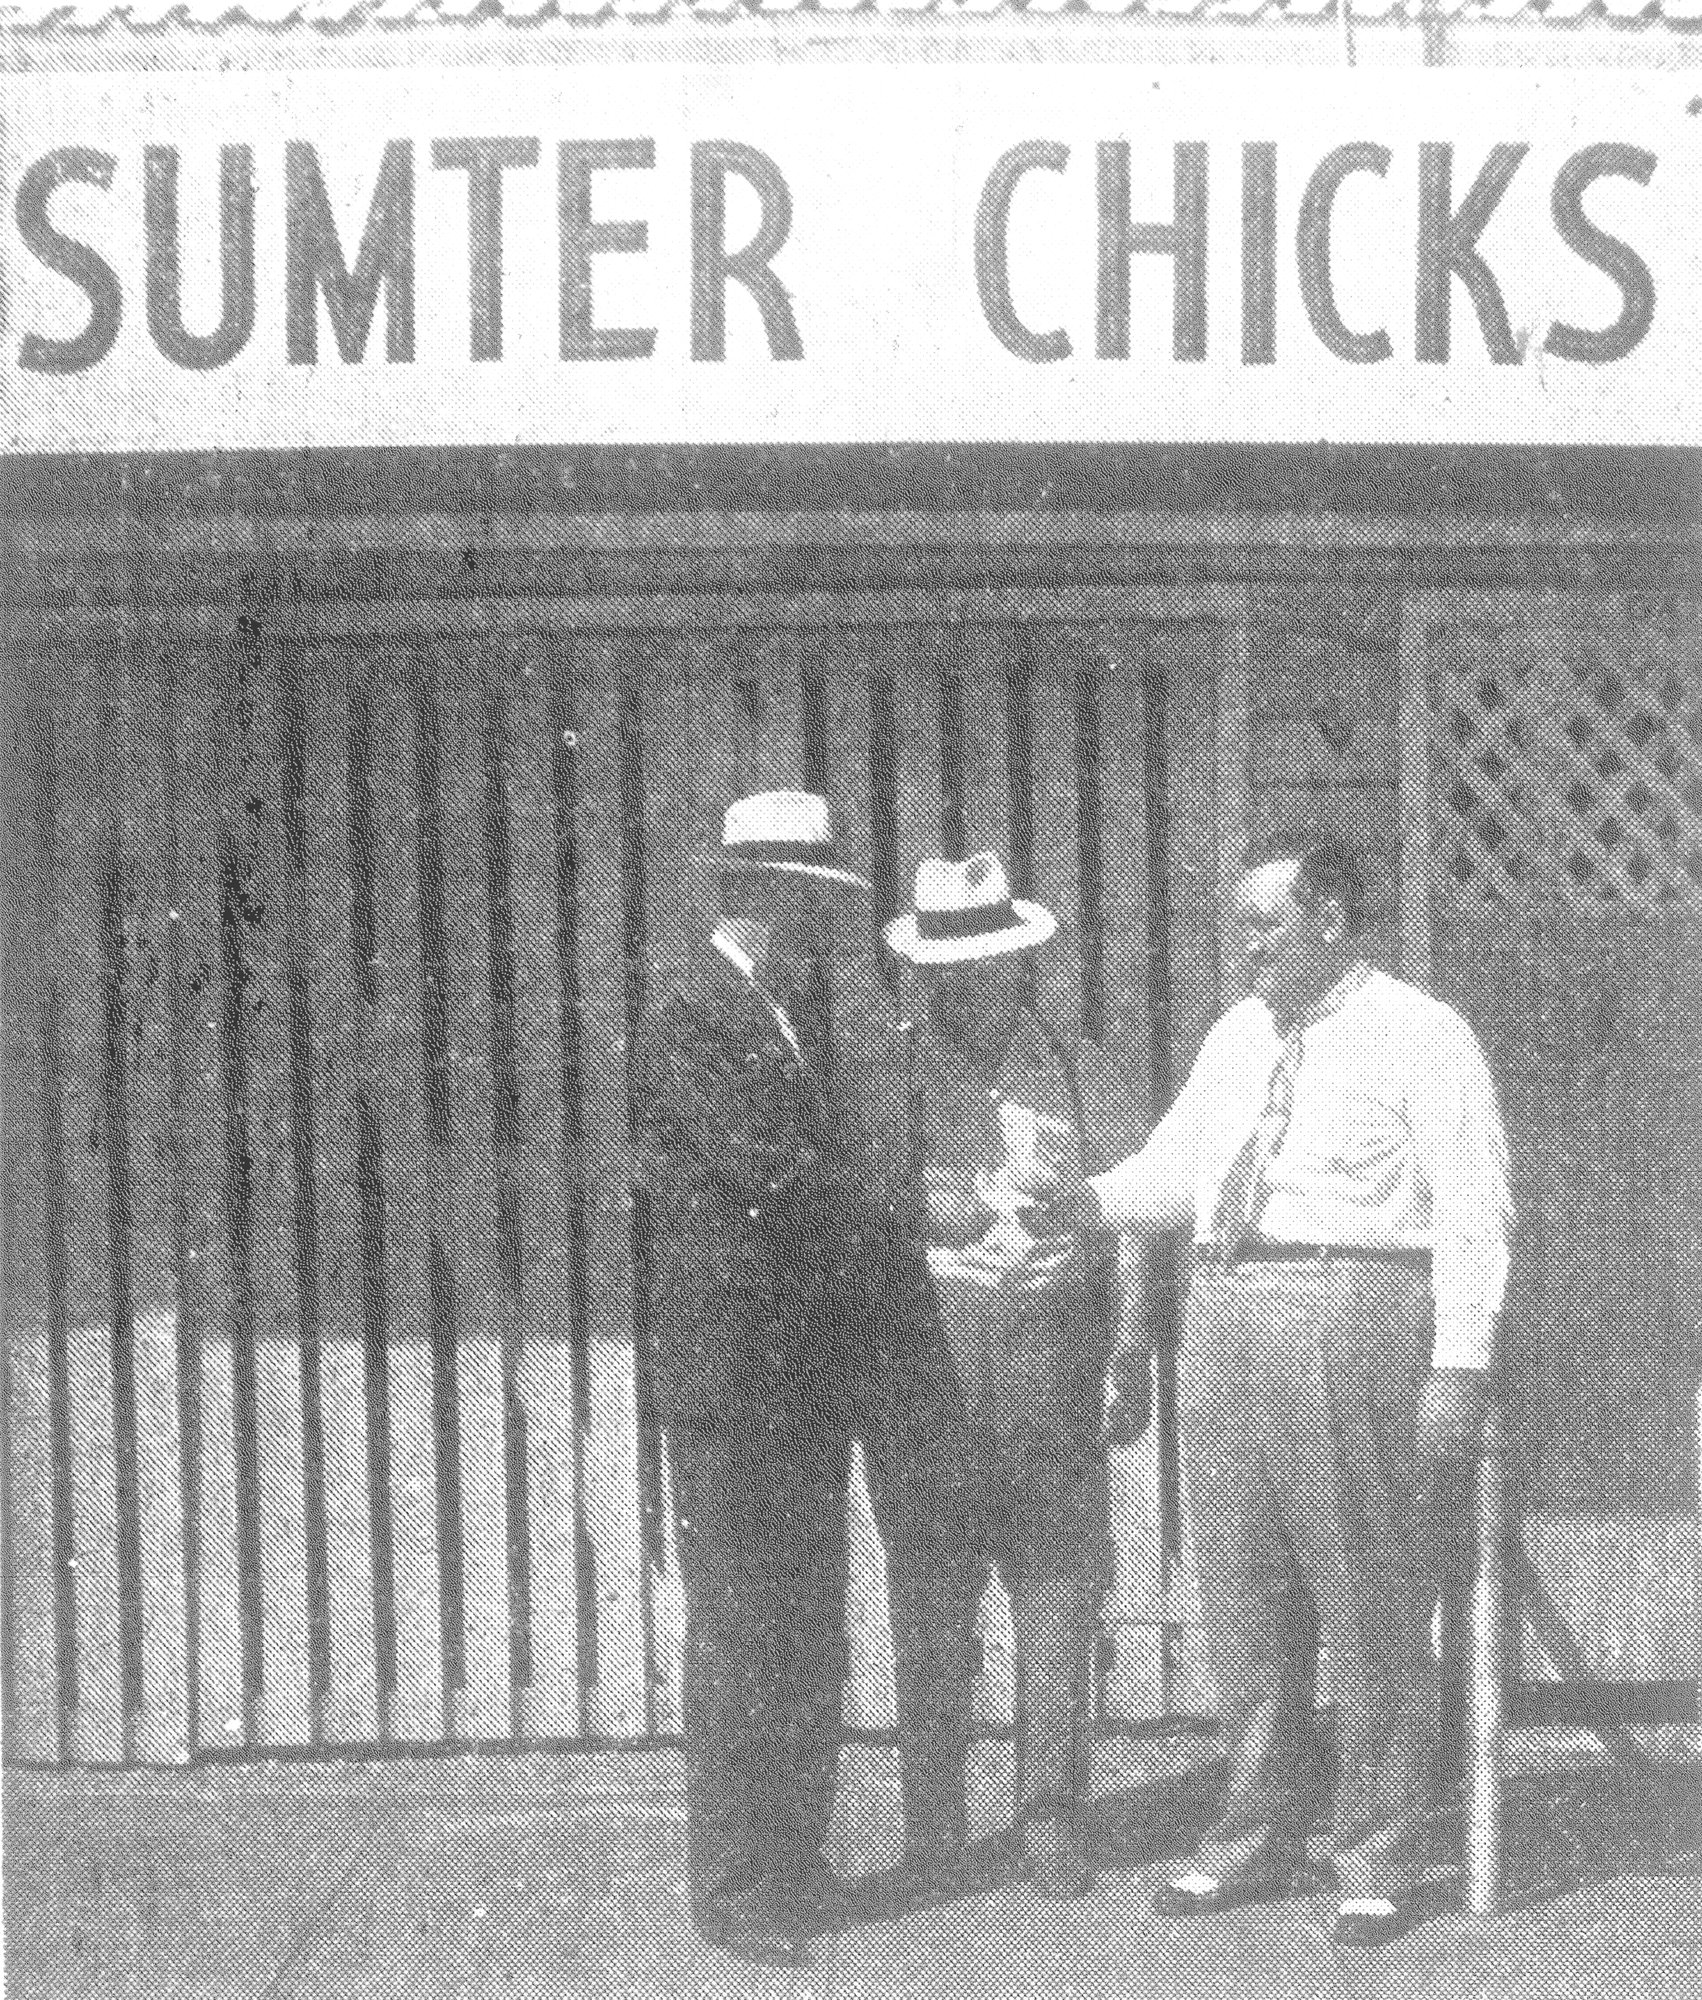 1950 - Mayor W. E. Bynum buys the first ticket for the Chicks' four-game series with Asheville and three-game series with Knoxville during Baseball Week in Sumter, June 19-25, from A. T. Heath Jr., president, Sumter Chicks Inc., while Troy Agnew, center, the club's general manager, looks on. The advance sale was designed to increase attendance at Riley Park and ensure the continuance of Tri-State League baseball in Sumter.